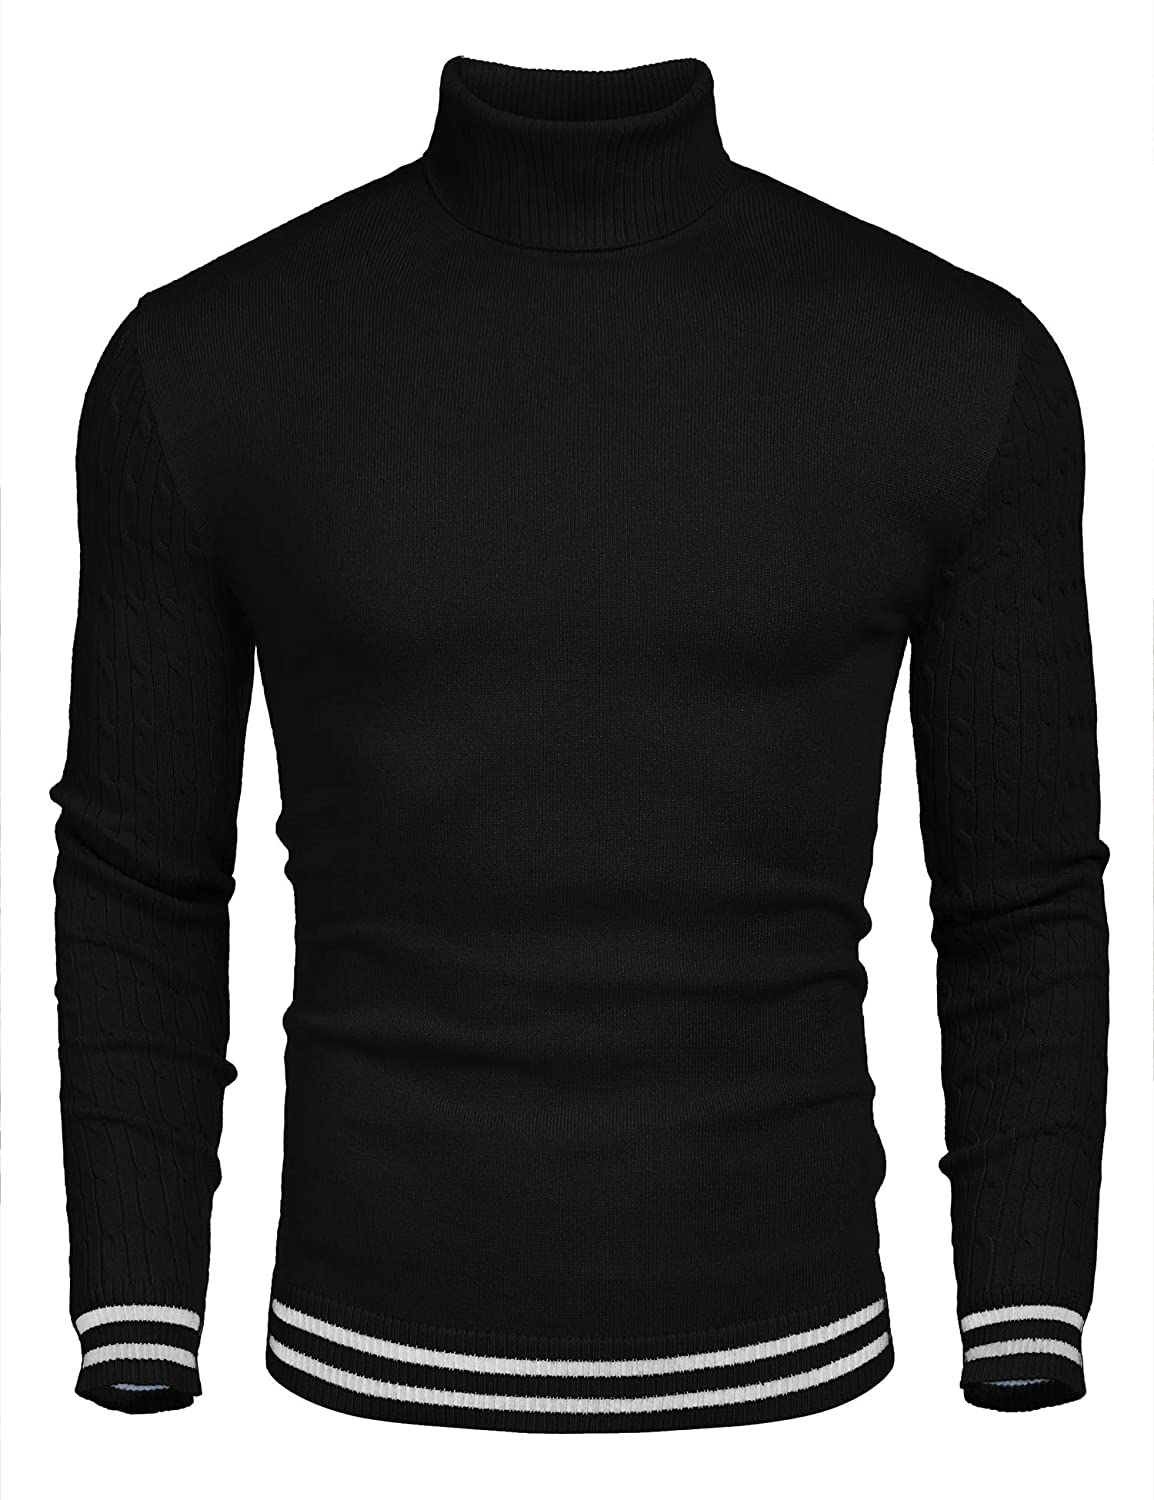 COOFANDY Men's Basic Ribbed Thermal Knitted Pullover Slim Fit Turtleneck Sweater THS00001